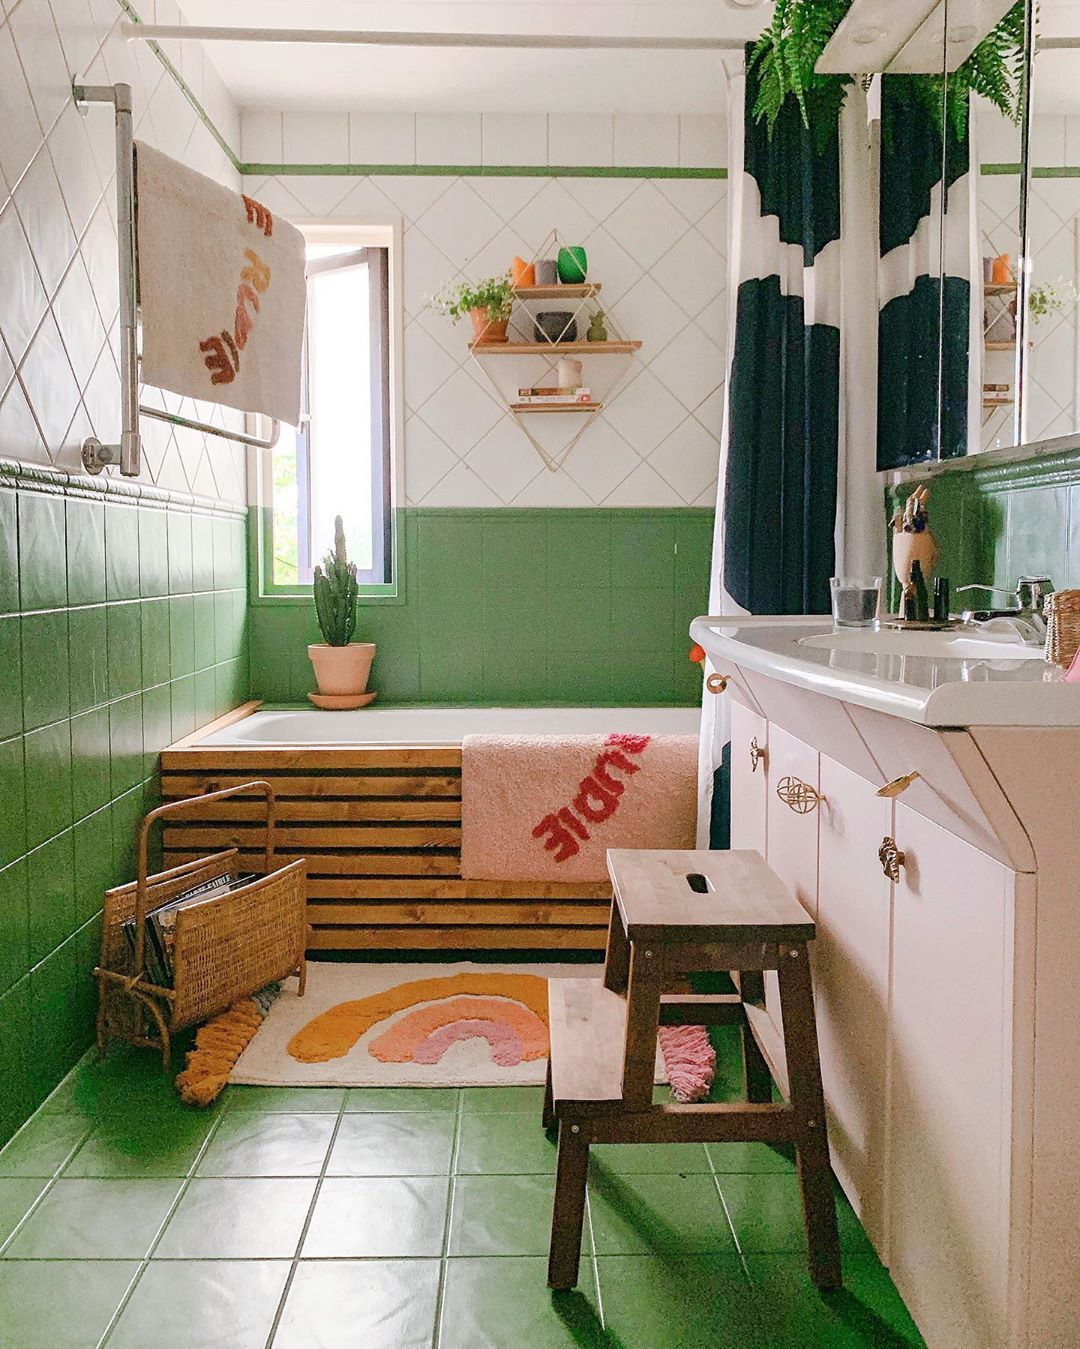 Best Ways To Redecorate With Green: Ready To Redecorate? Check Out These Green Bathrooms From